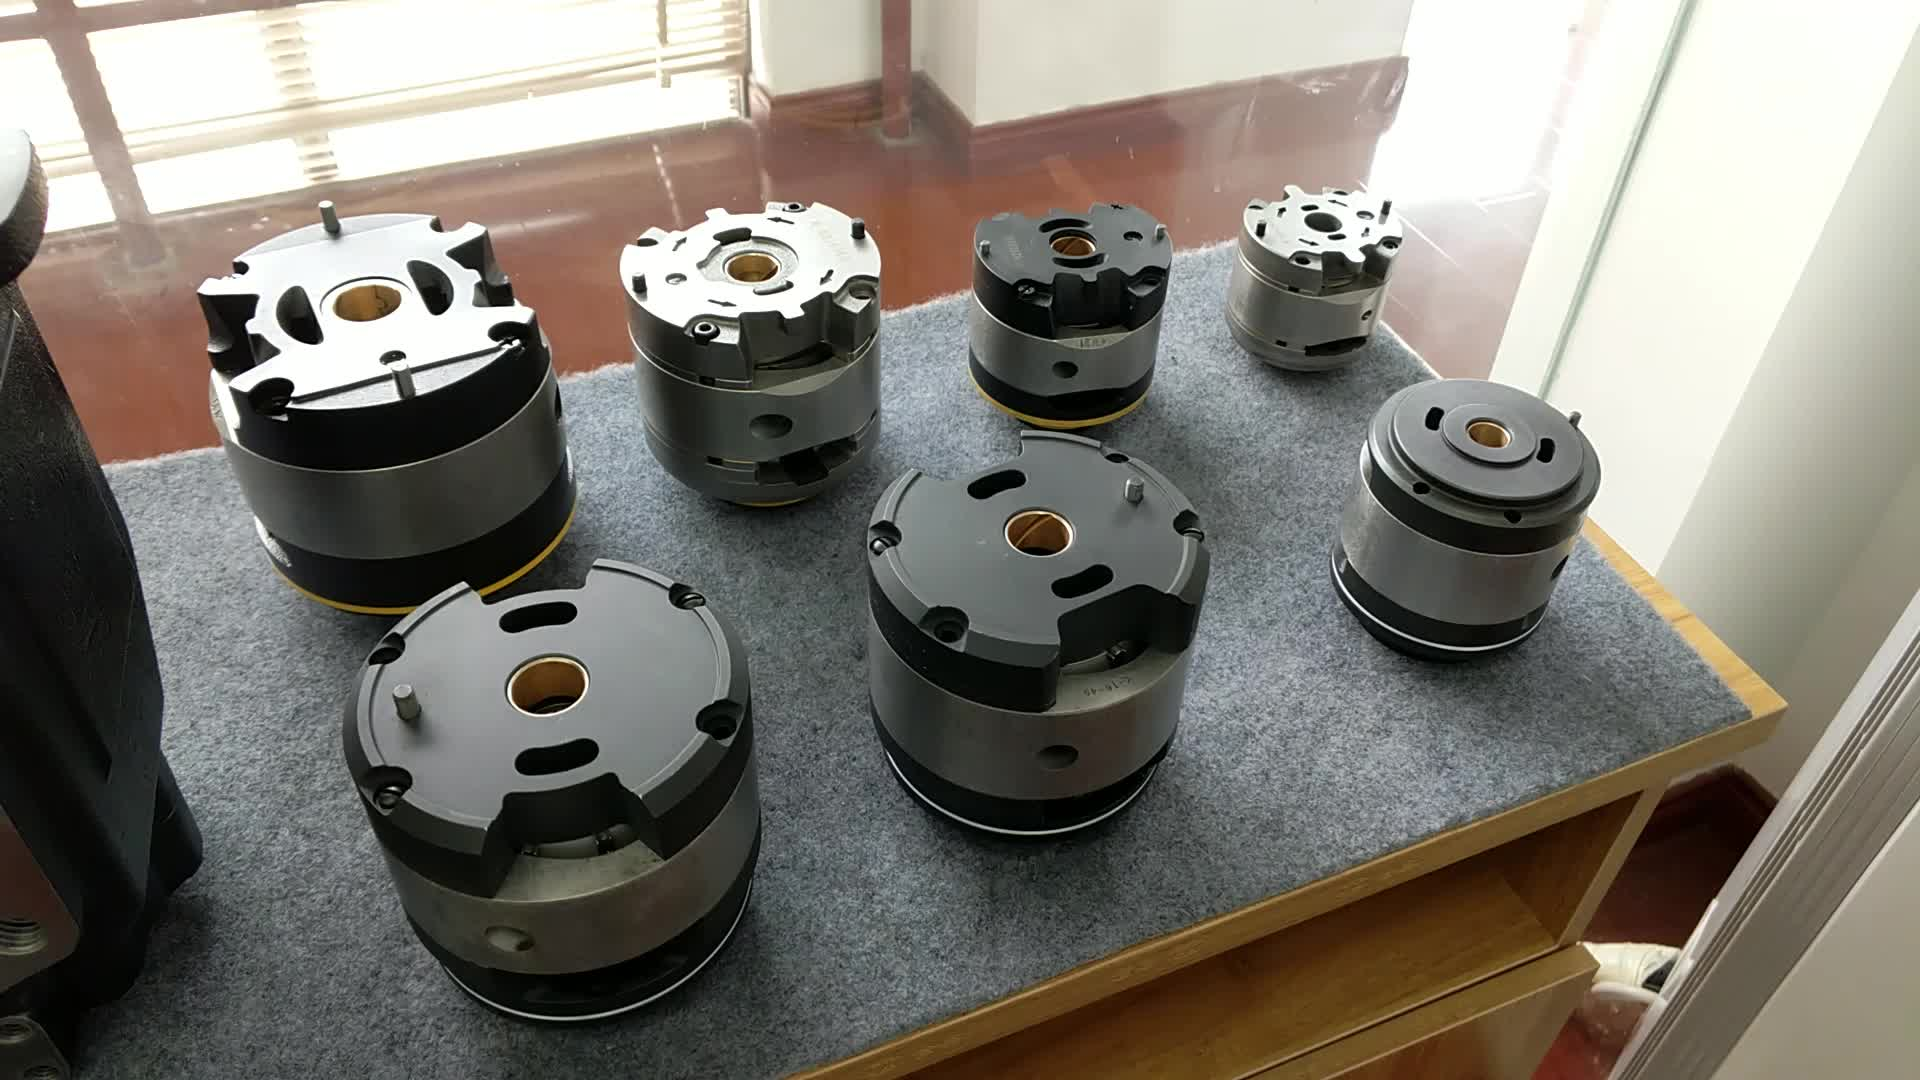 High Pressure Tokimec SQP Hydraulic Vane Pump Cartridge Kits